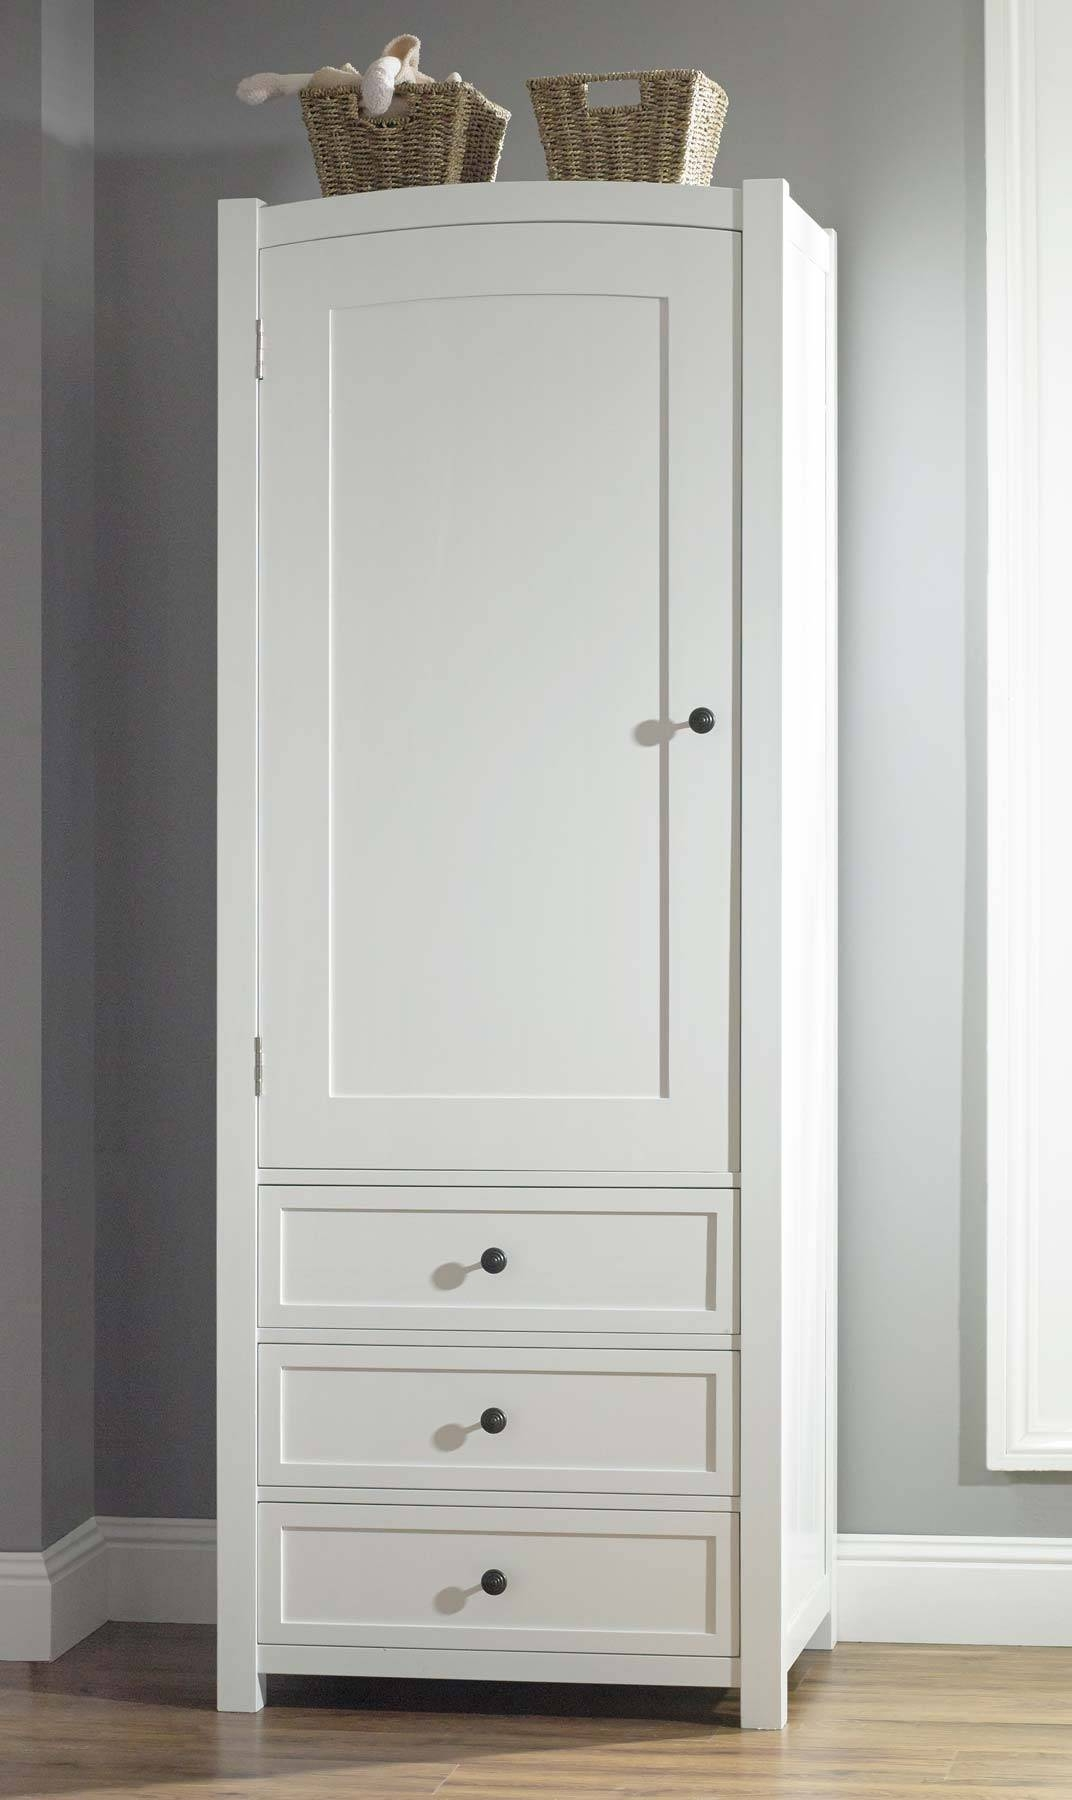 Wardrobe : 39 Formidable White Wooden Wardrobe With Drawers Photo with White Wood Wardrobes (Image 10 of 15)